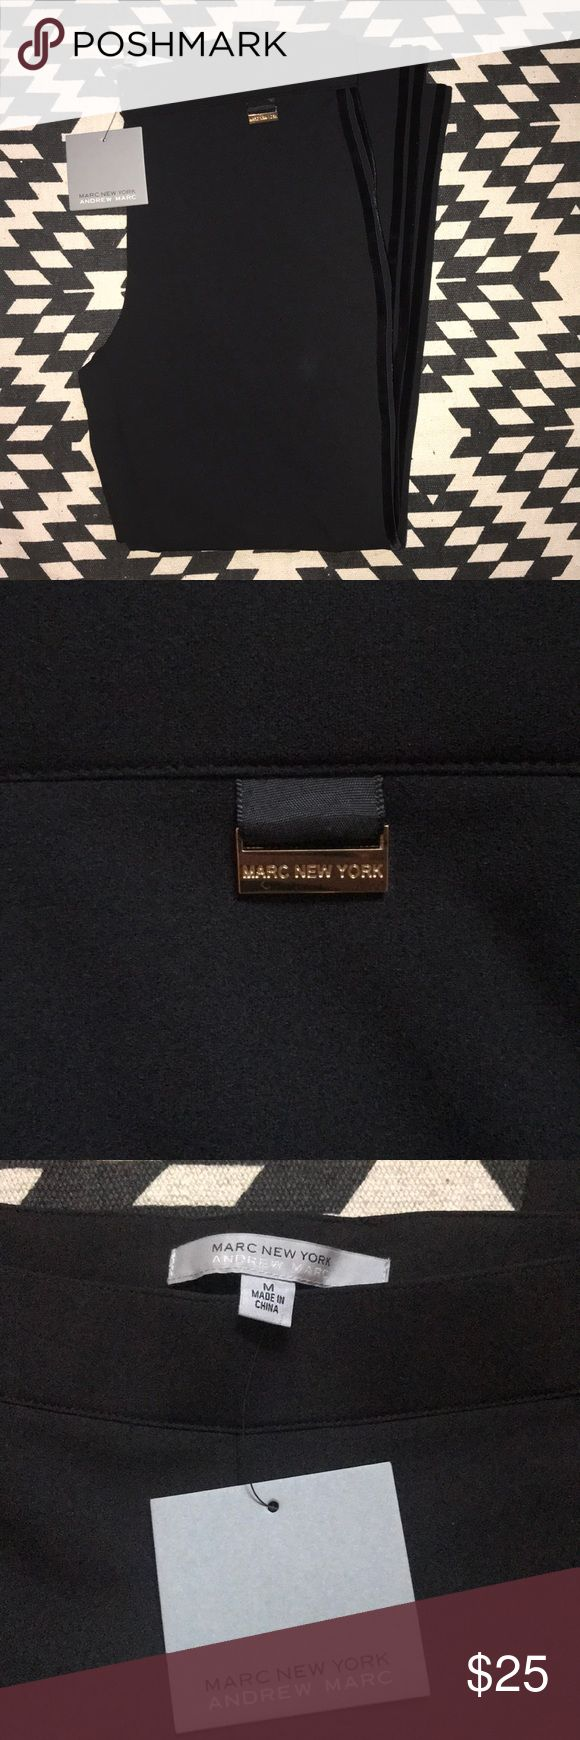 """Marc New York Andrew Marc dress pants Marc New York Andrew Marc dress pants NWT, very stretchy material  97% polyester 3% spandex  They have a runny control spandex band across the top. Valor stripes run some the side of the pants, giving them added texture and style.  Inseam 26""""  Length 36""""  Waist 16""""  Size M Andrew Marc Pants Straight Leg"""